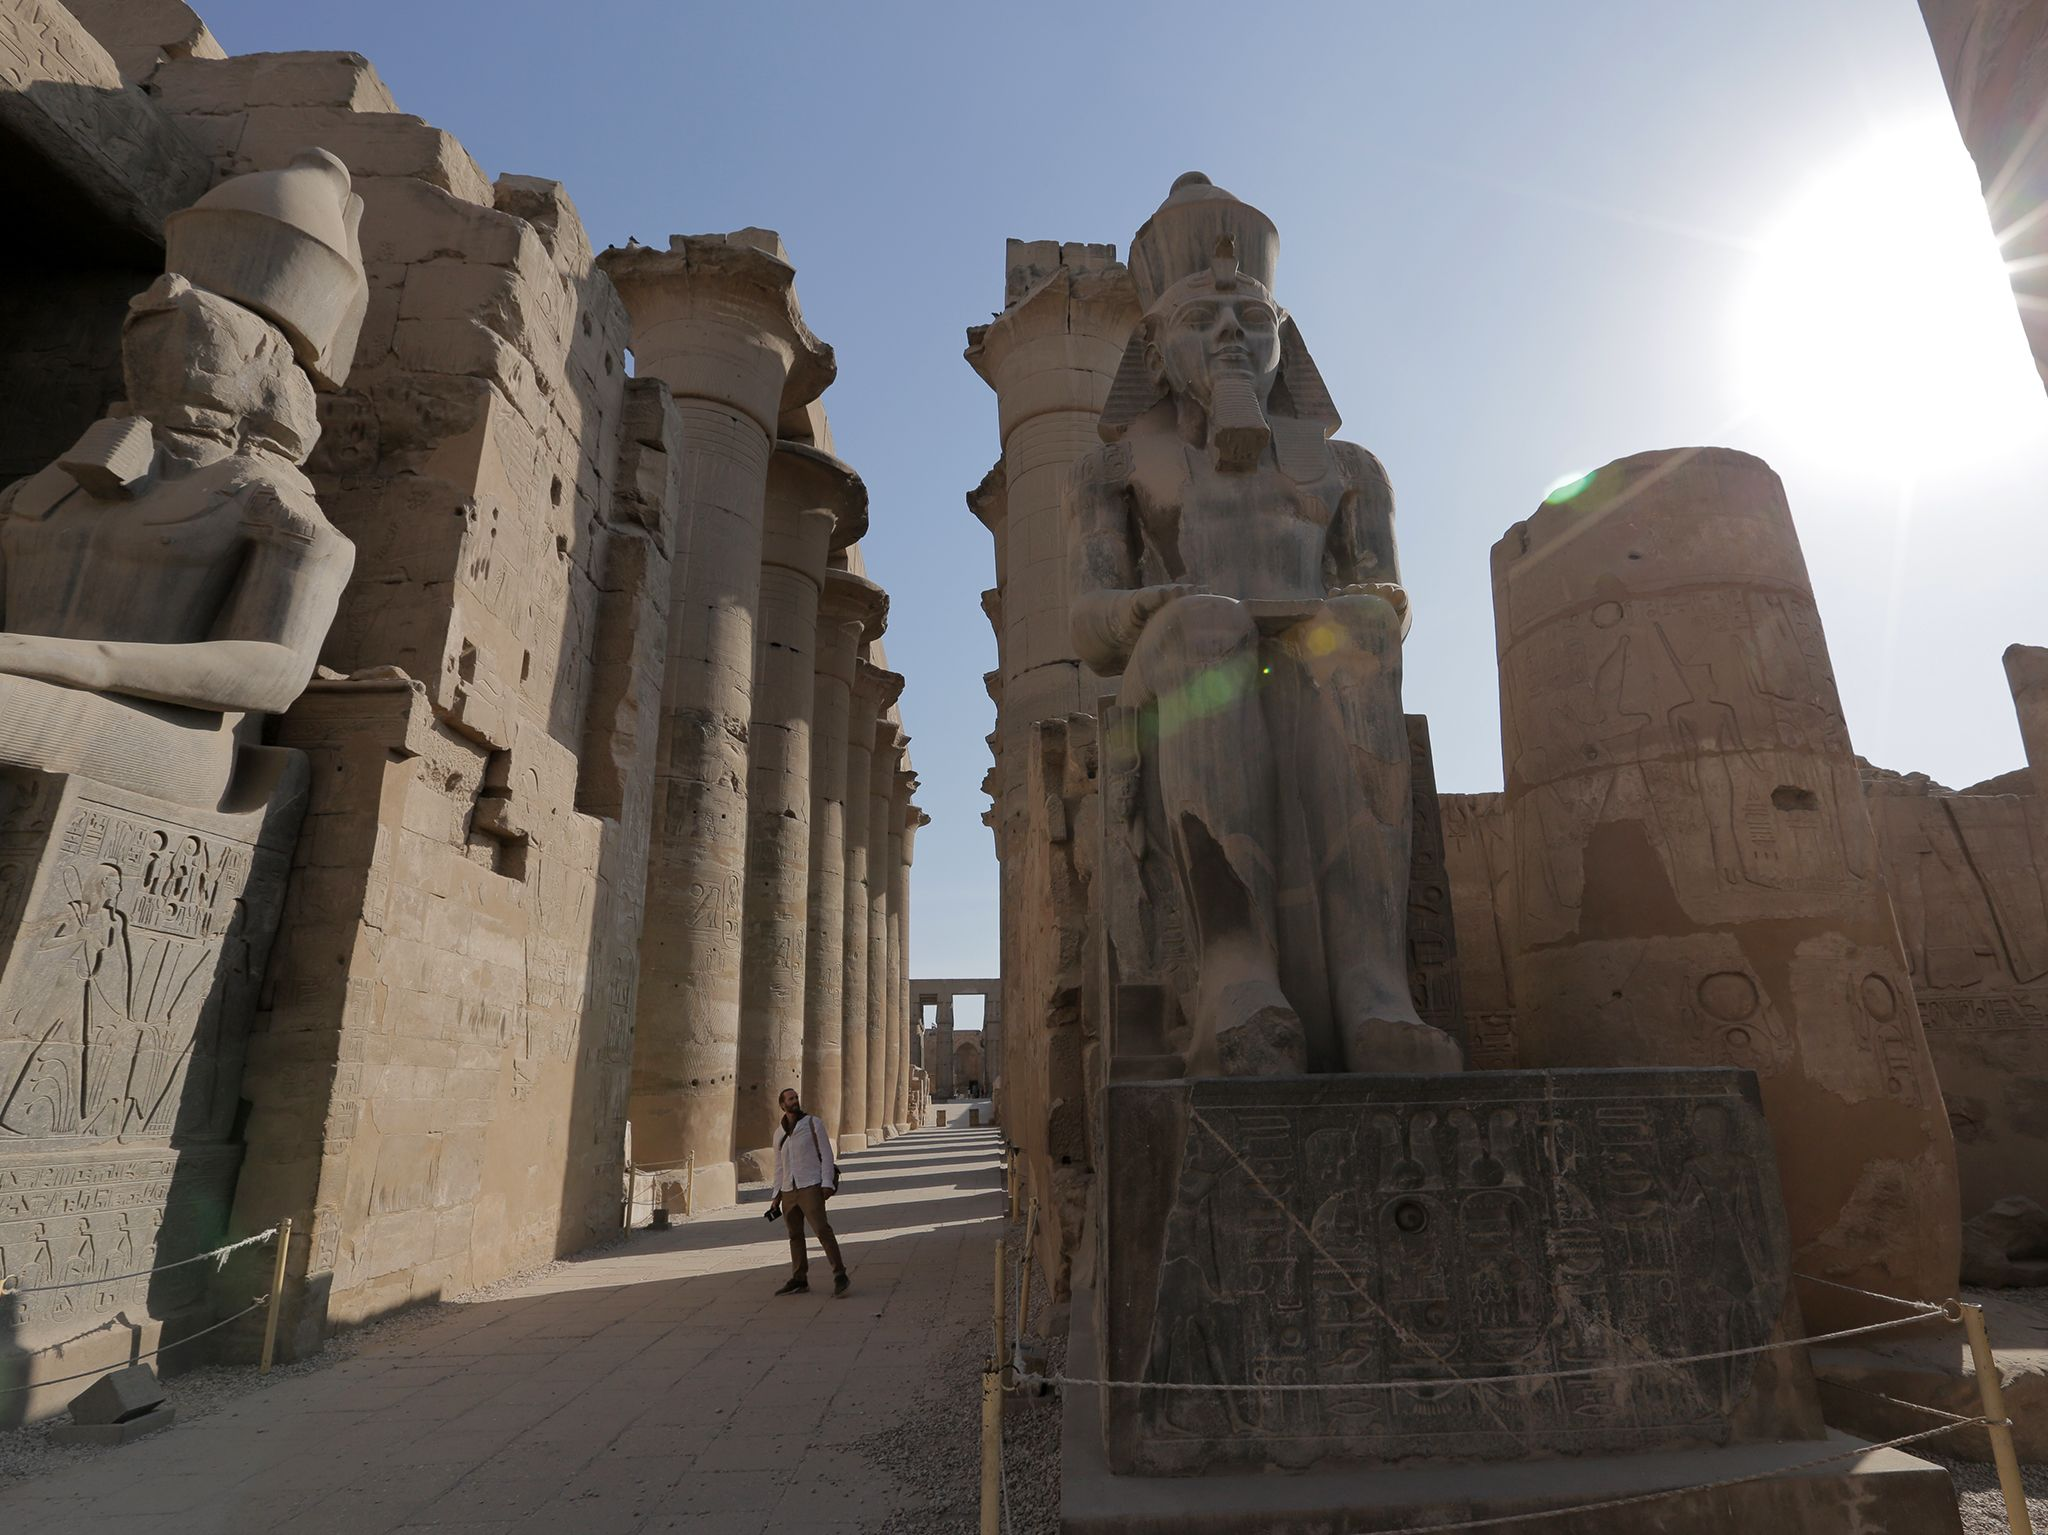 Joe enjoying some time as a tourist visiting Luxor Temple. This image is from Egypt with the... [Foto del giorno - aprile 2019]